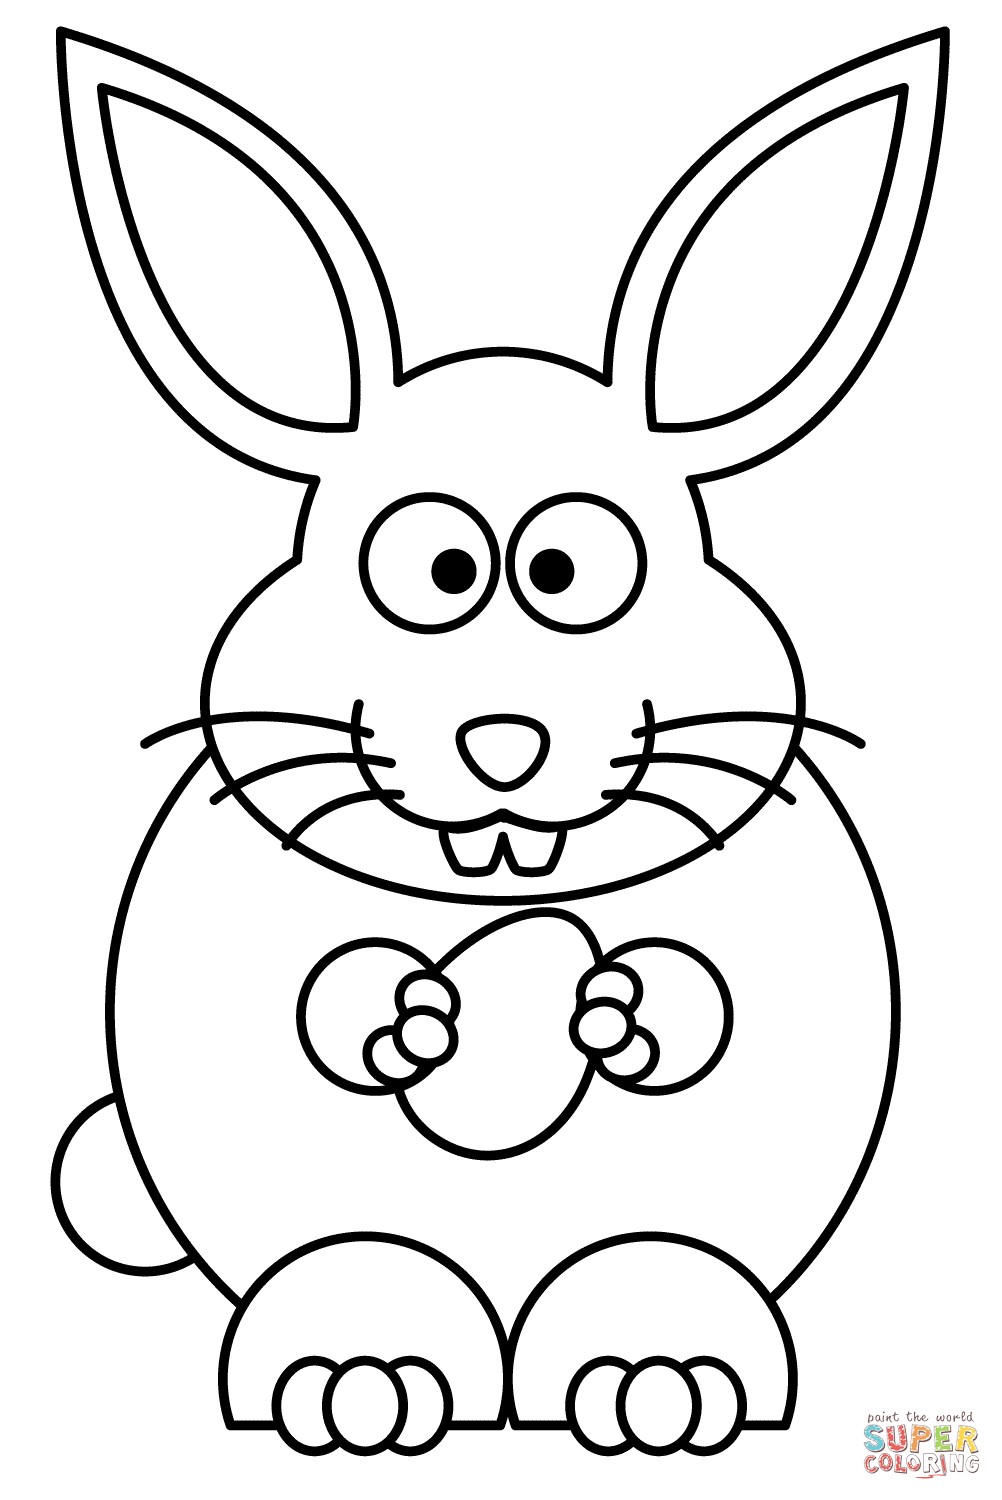 1002x1500 Easter Rabbit With Egg Coloring Page Free Printable Coloring Pages